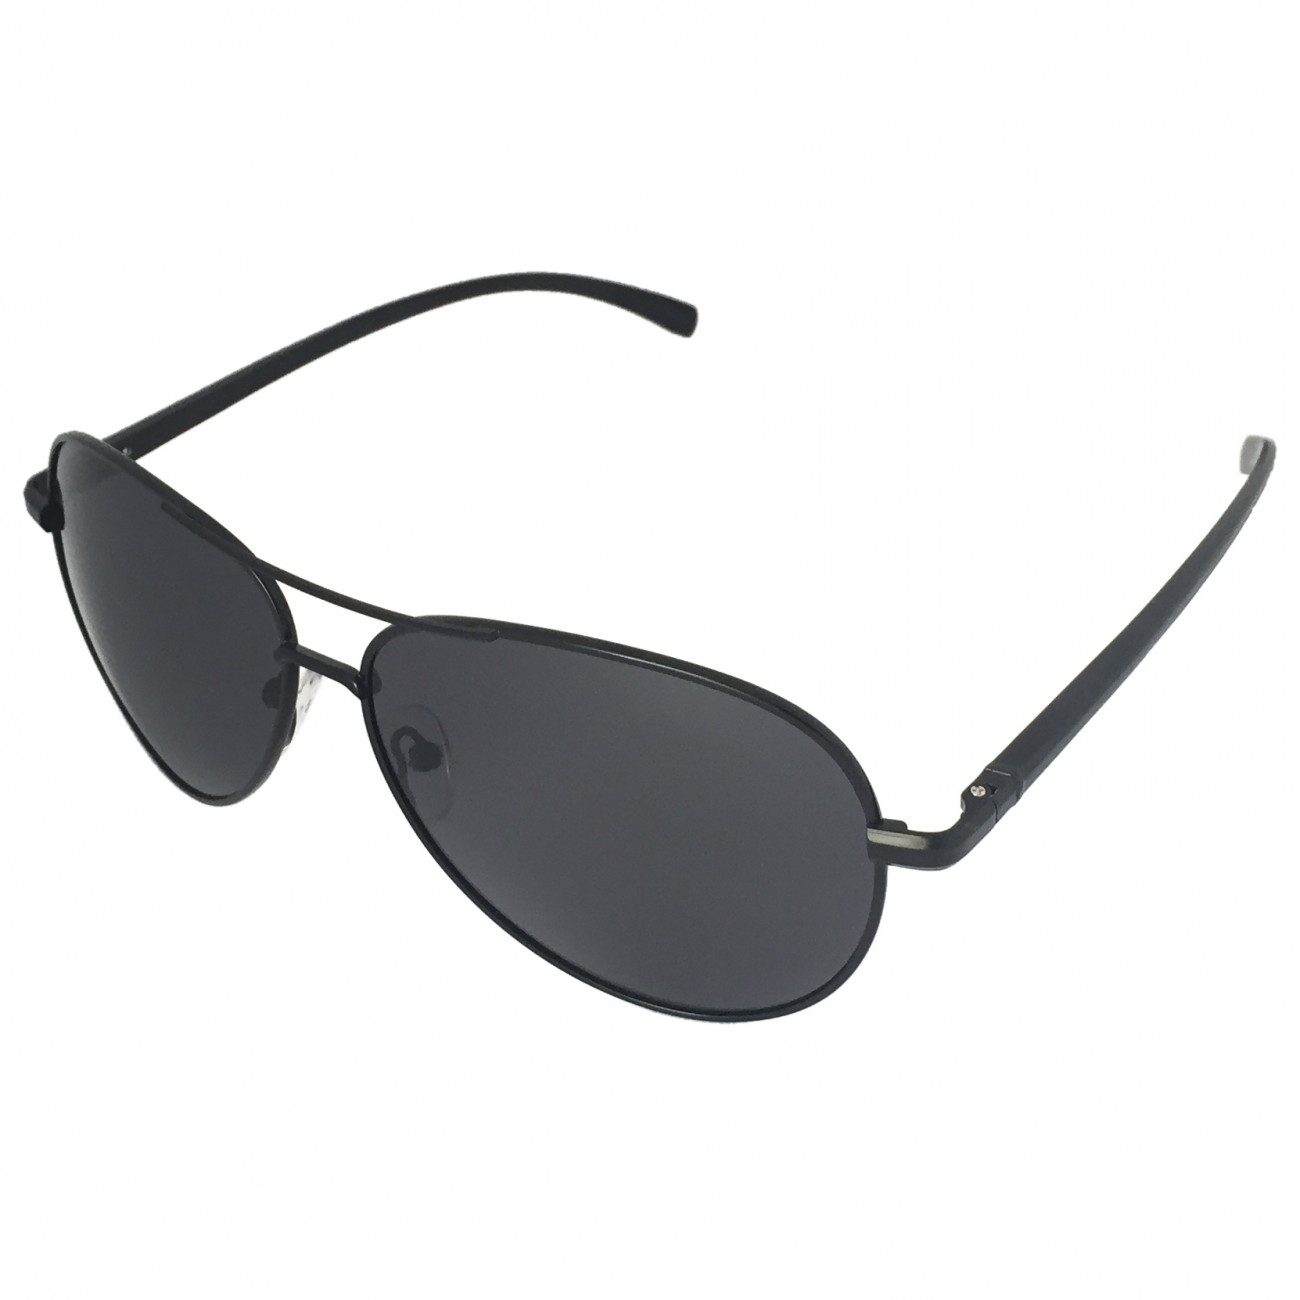 polarized aviator sunglasses ihht  J+S Vision Ultra Sleek Military Style Polarized Aviator Sunglasses